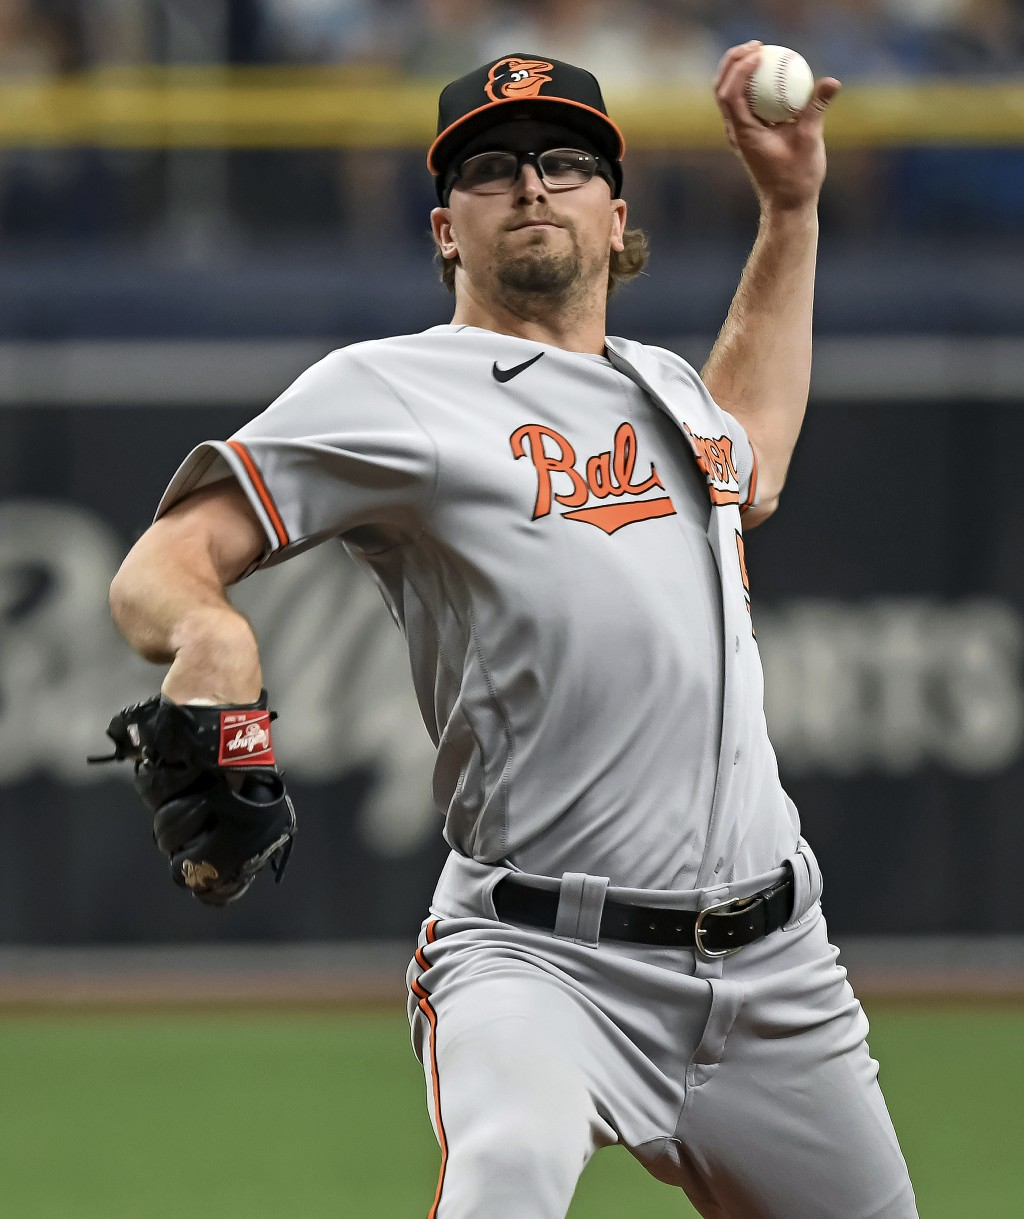 Baltimore Orioles starter Alexander Wells pitches against the Tampa Bay Rays during the first inning of a baseball game Wednesday, July 21, 2021, in S...